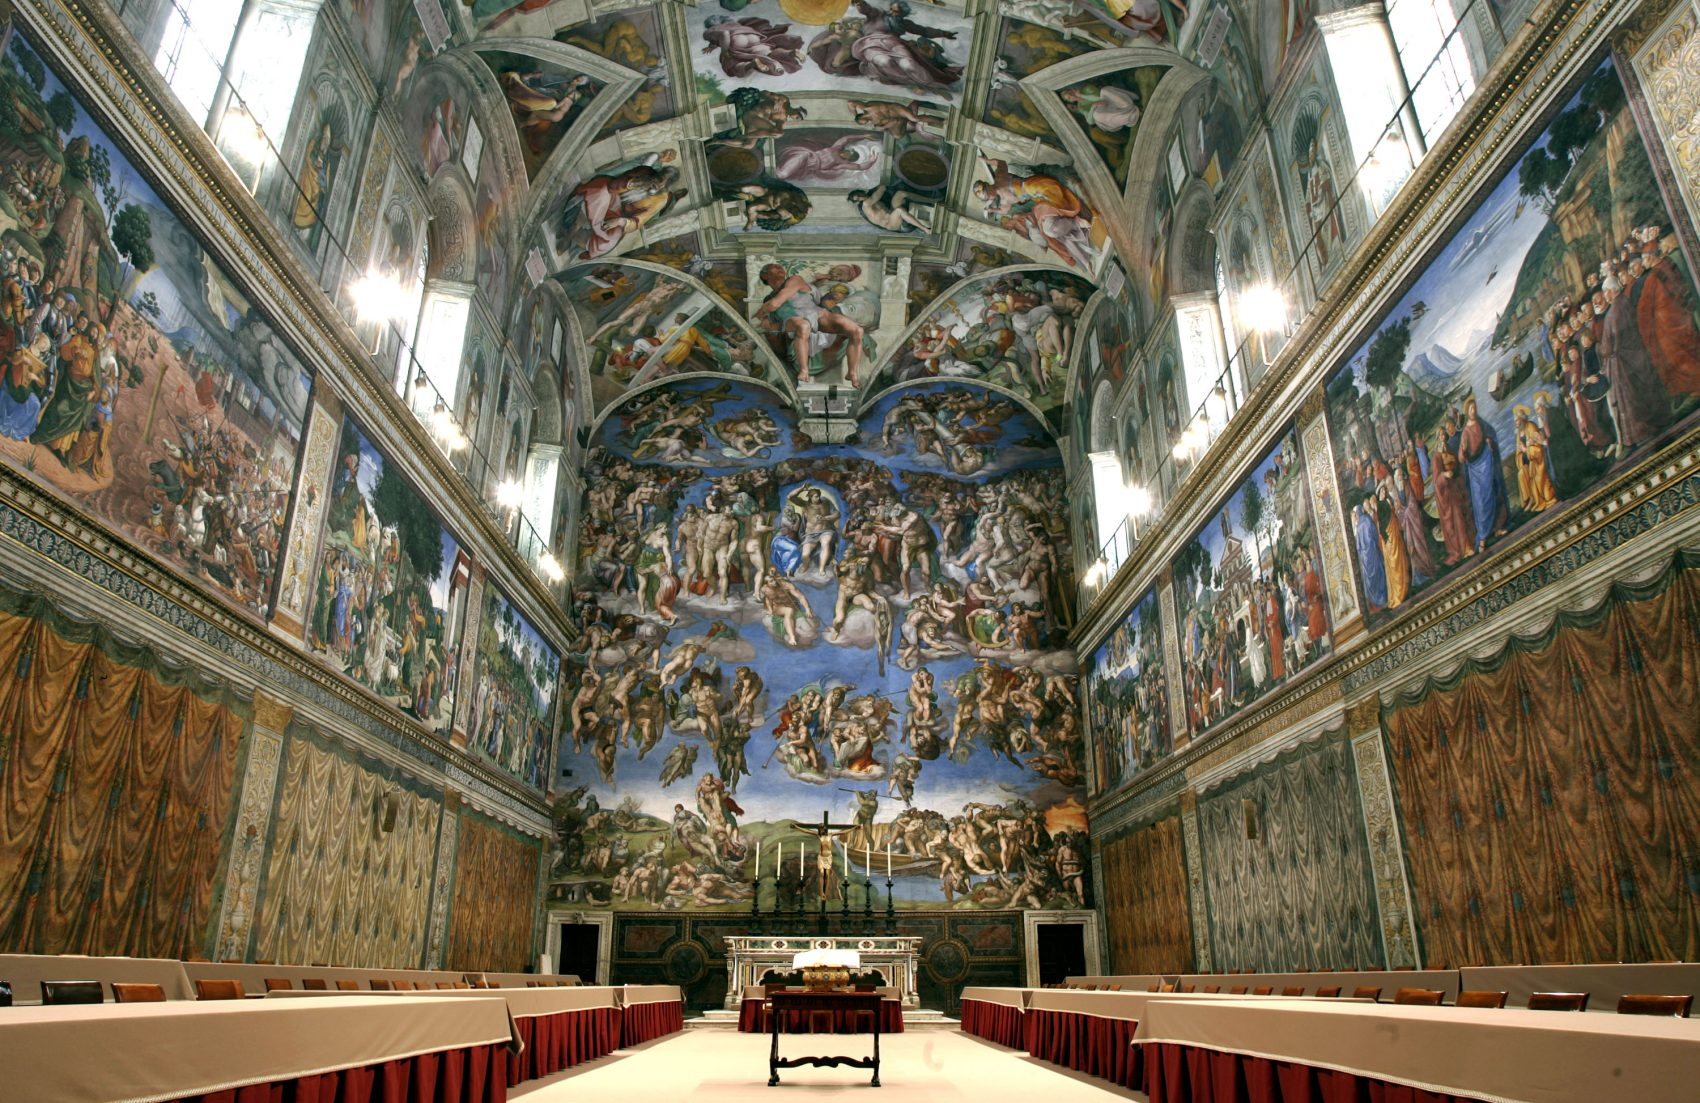 Five centuries after Michelangelo's ceiling frescoes were inaugurated at the Sistine Chapel, at least 10,000 people visit the site each day. (Pier Paolo Cito/AP)